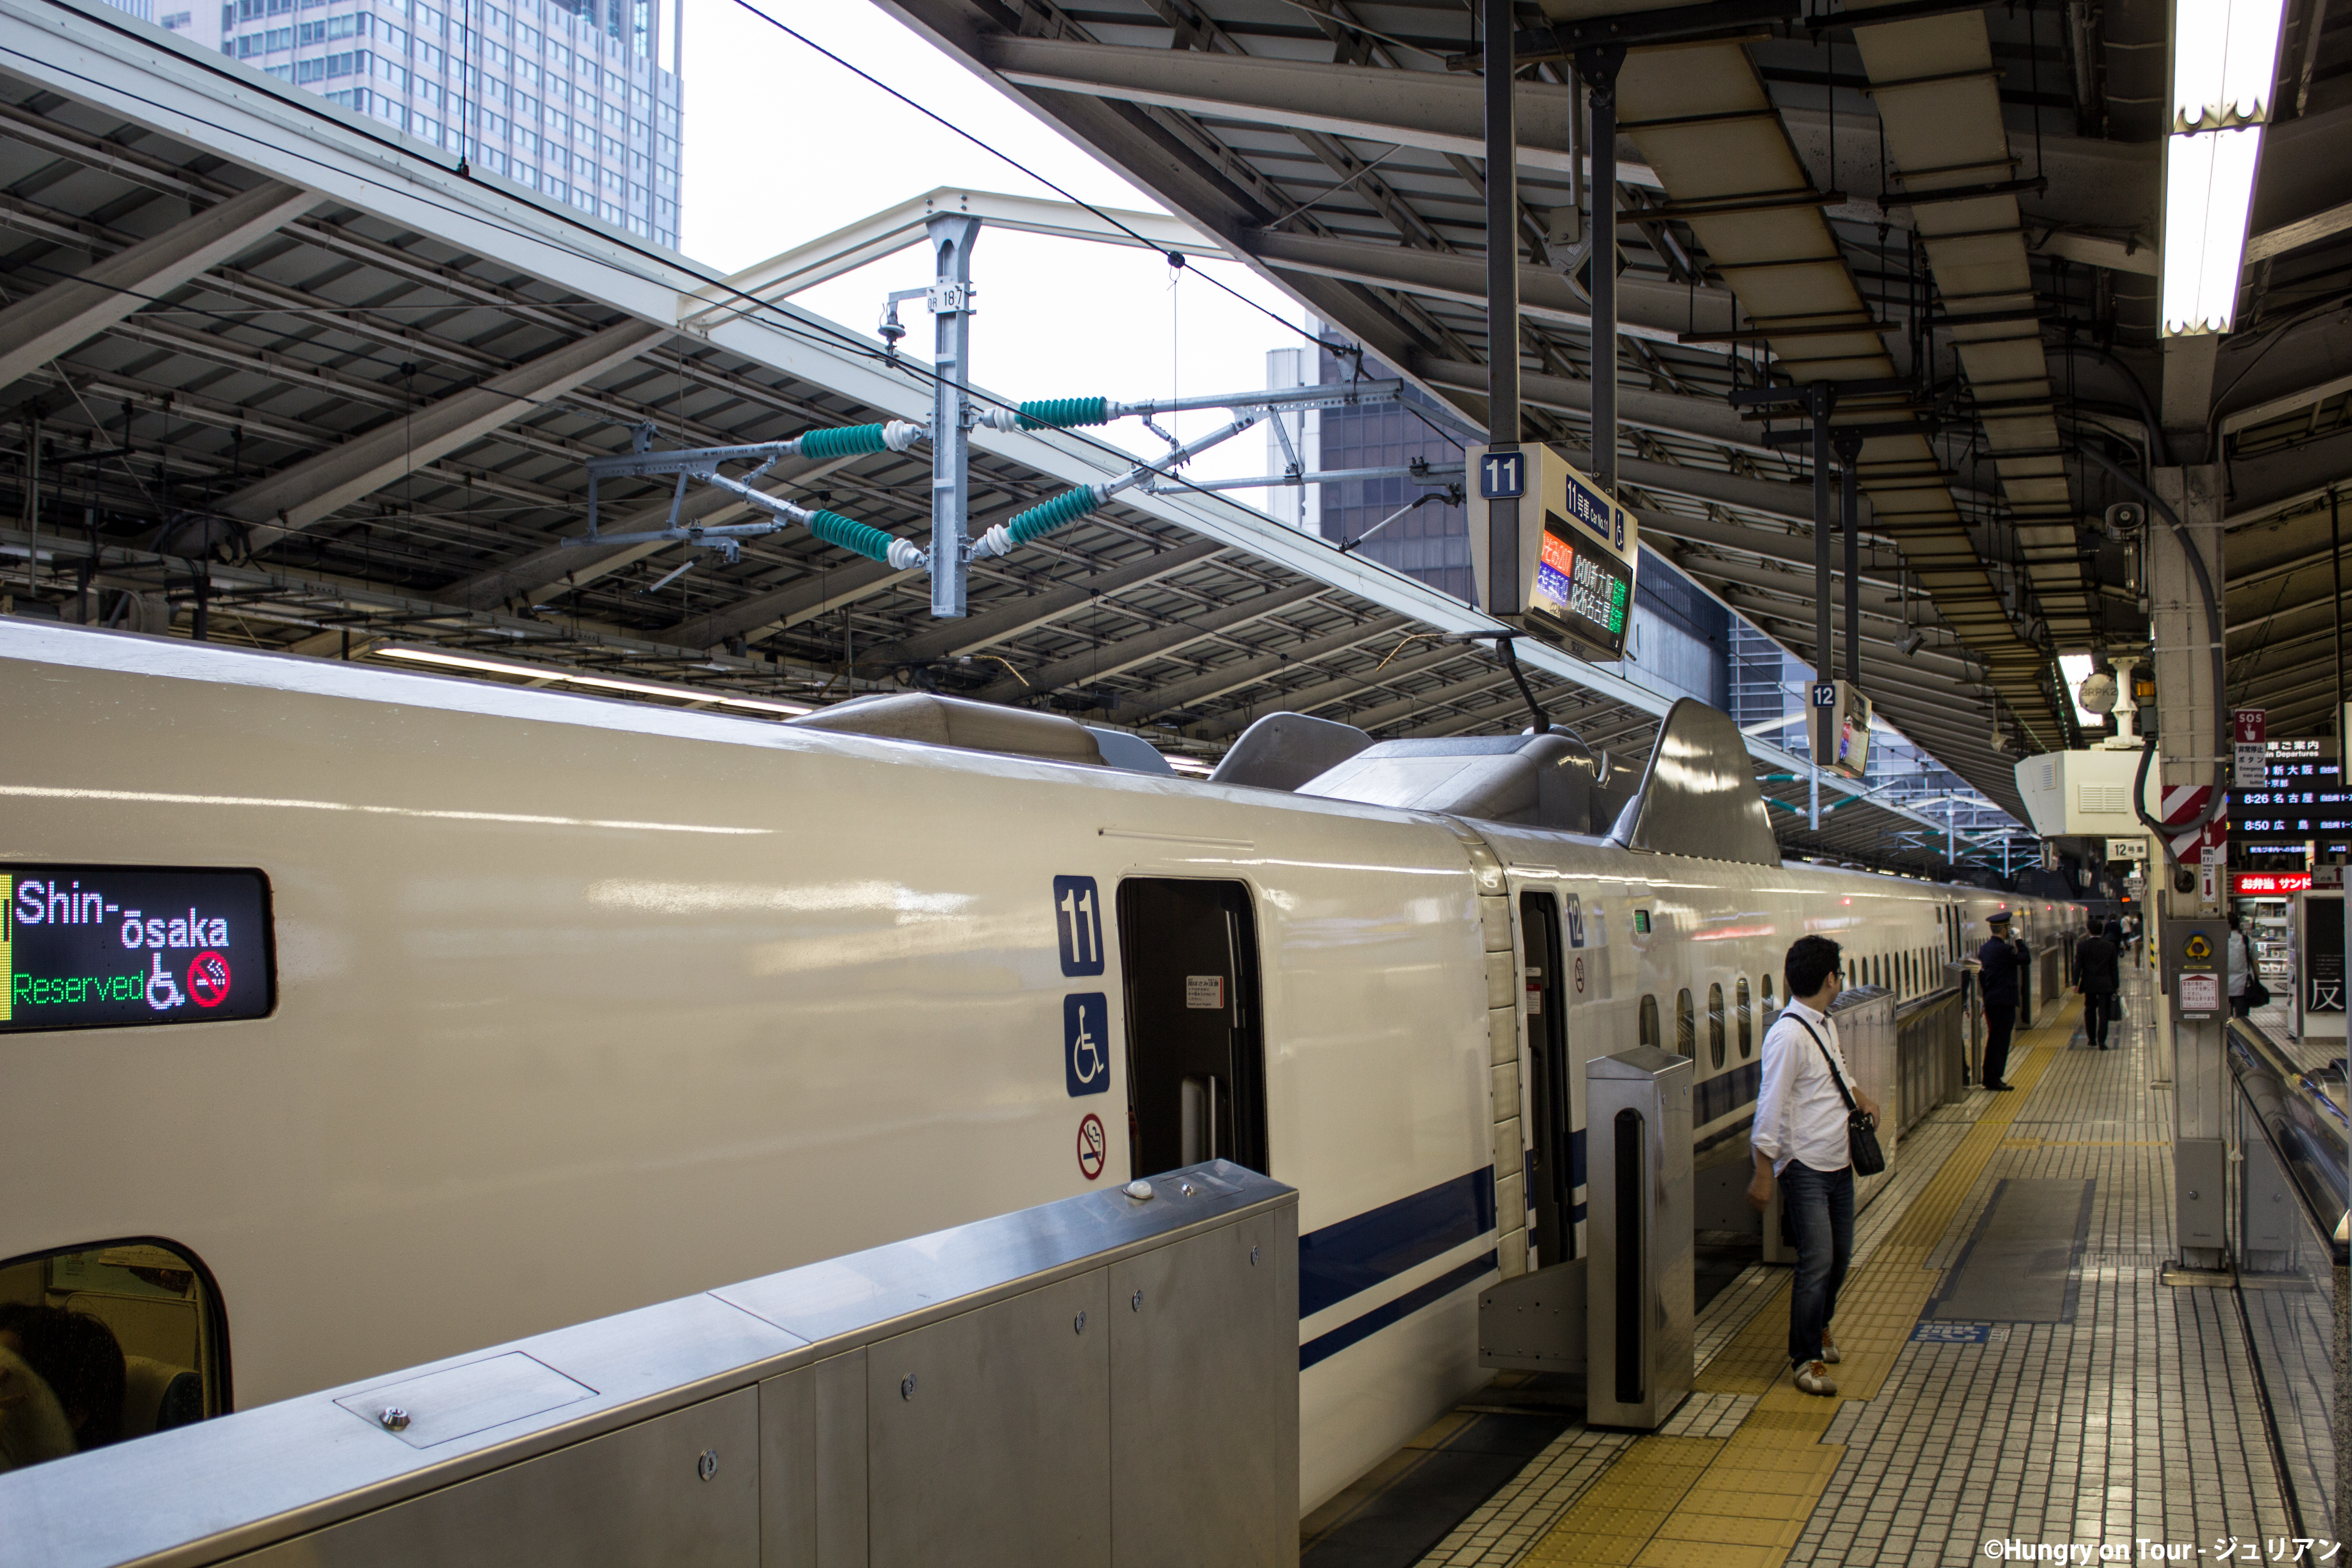 how to get to mt fuji from tokyo